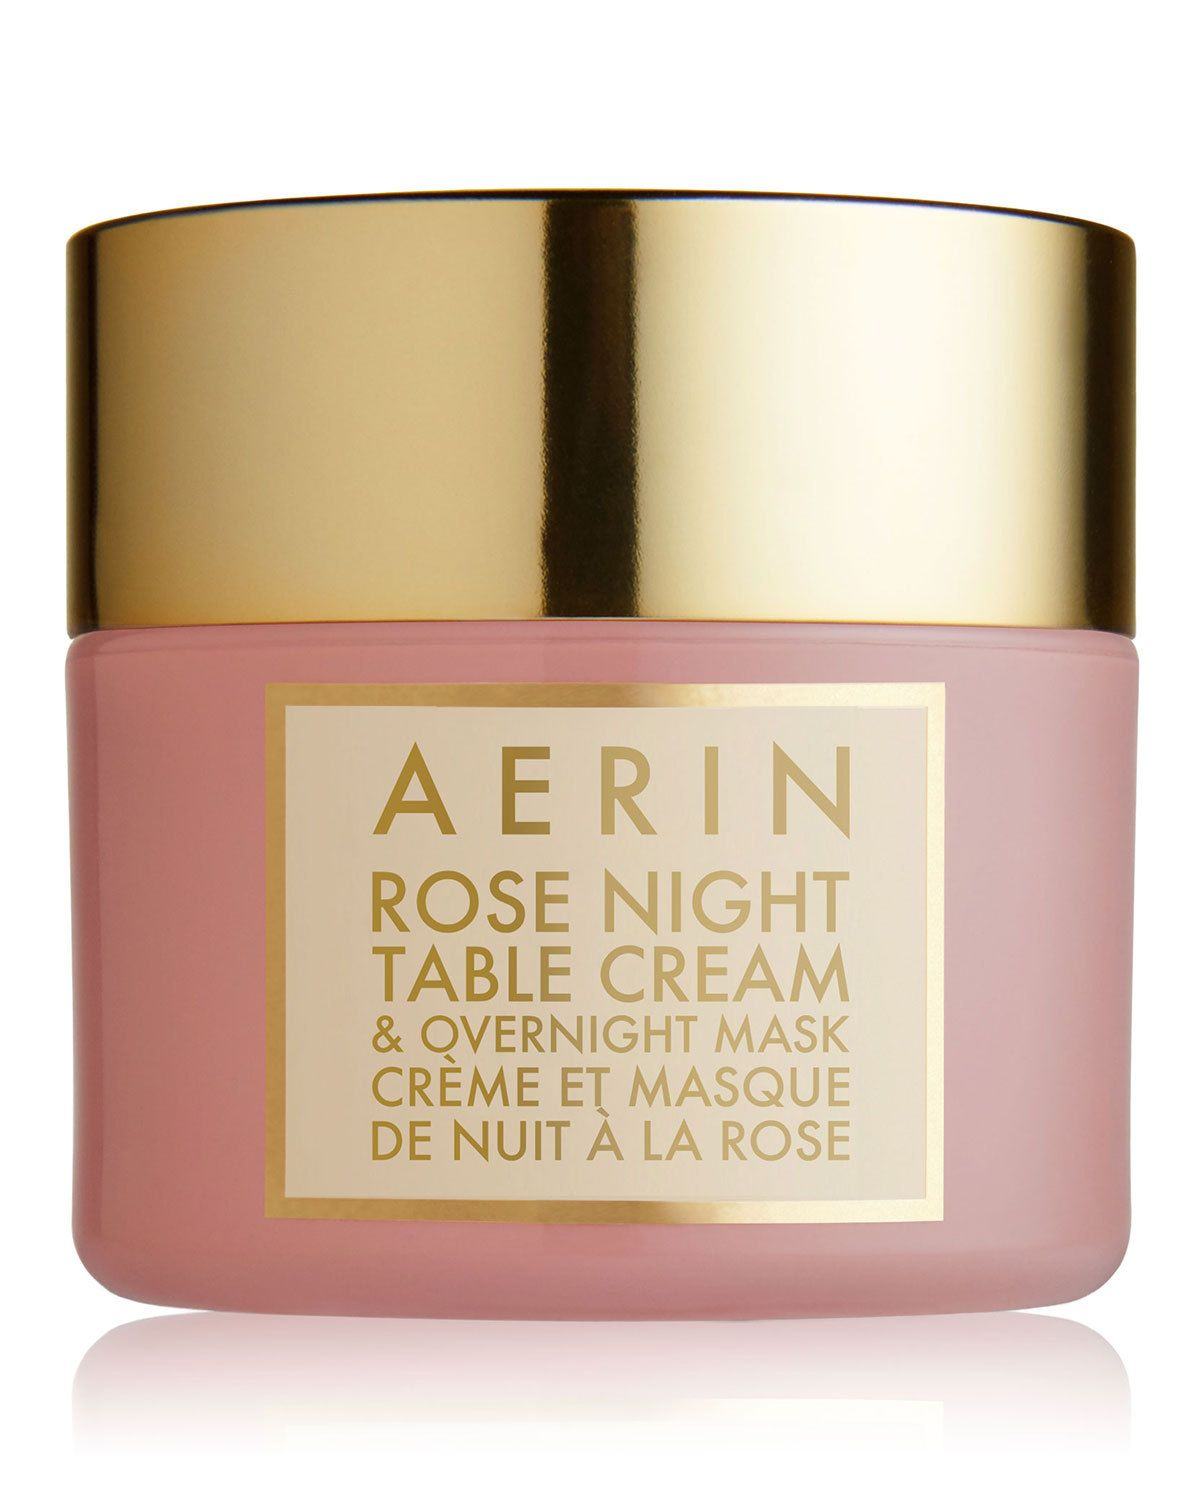 Aerin Rose Night Cream, $80